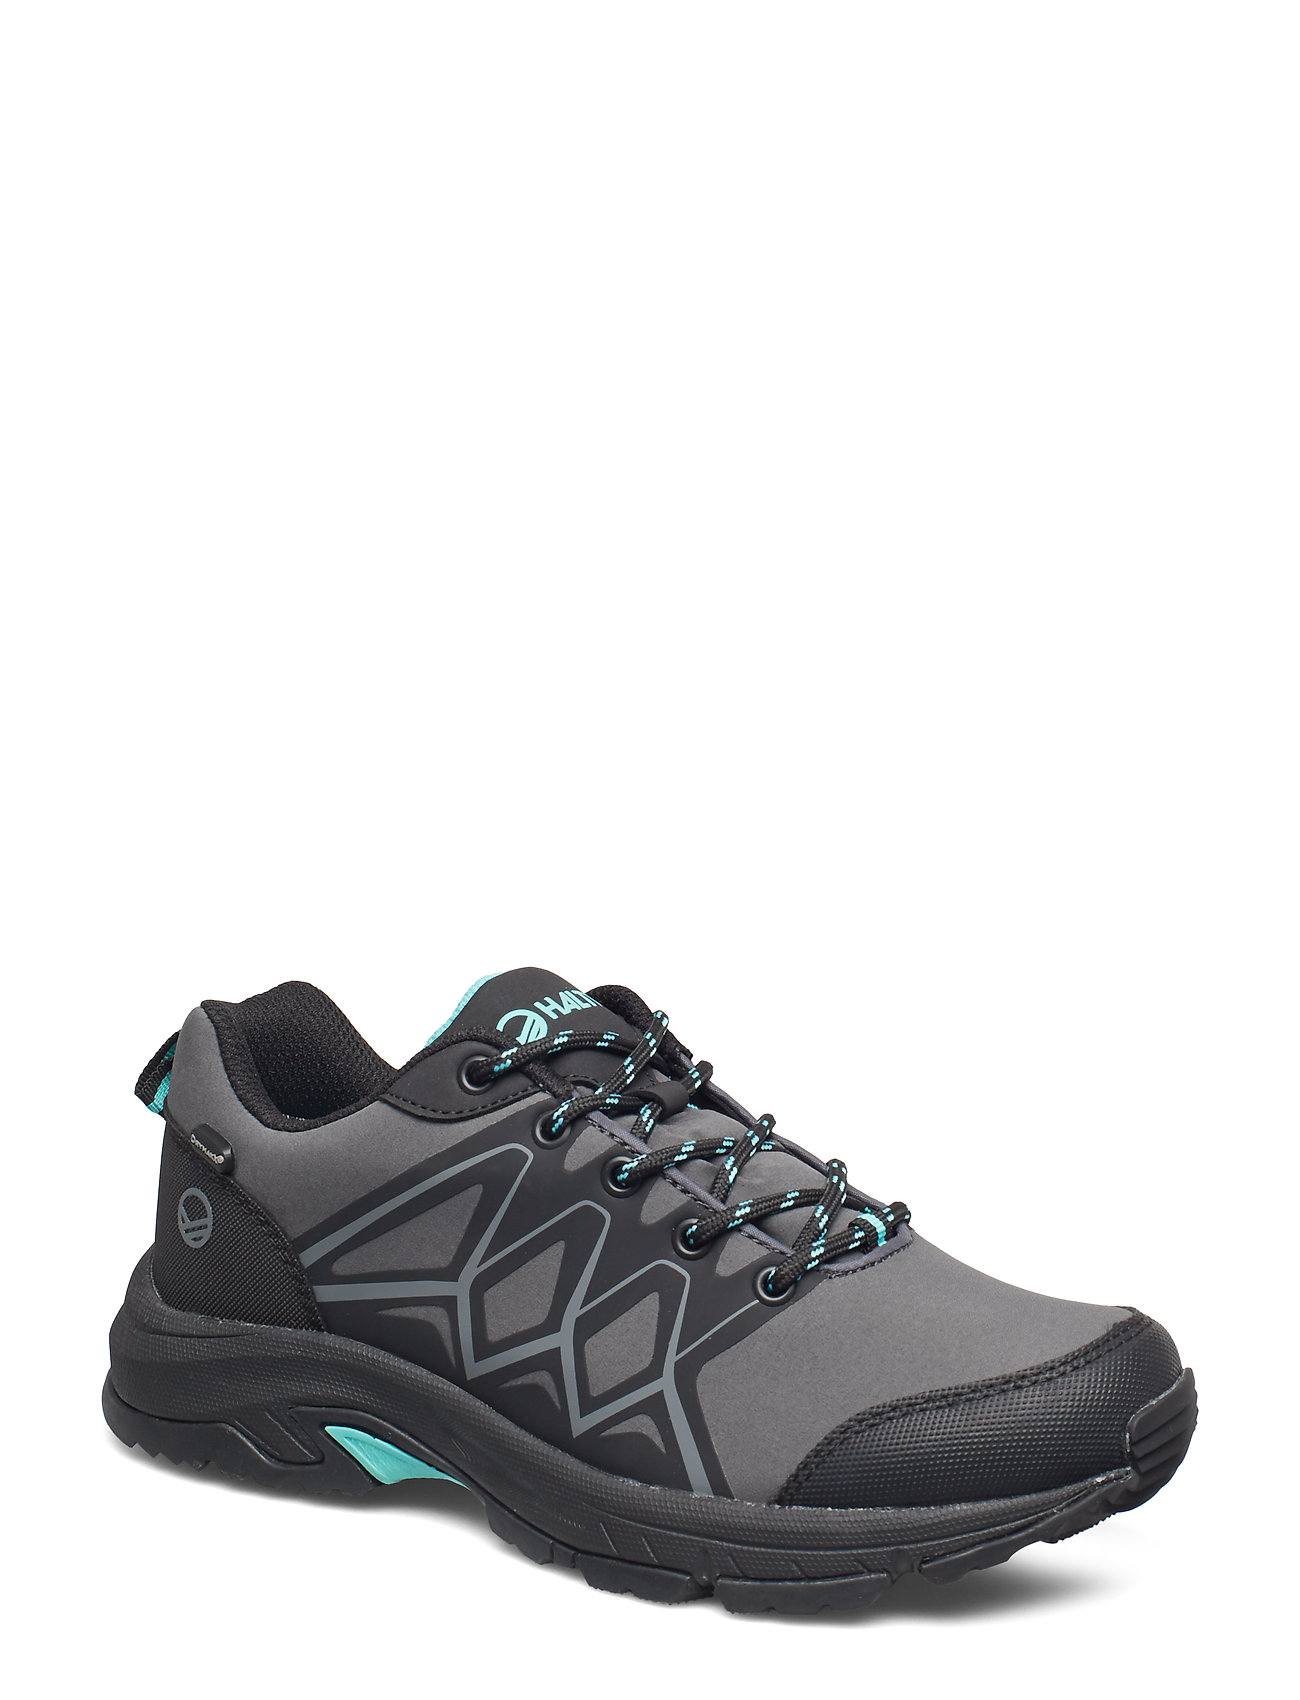 Image of Pove Low Dx W Outdoor Shoe Shoes Sport Shoes Training Shoes- Golf/tennis/fitness Grå Halti (3221353045)